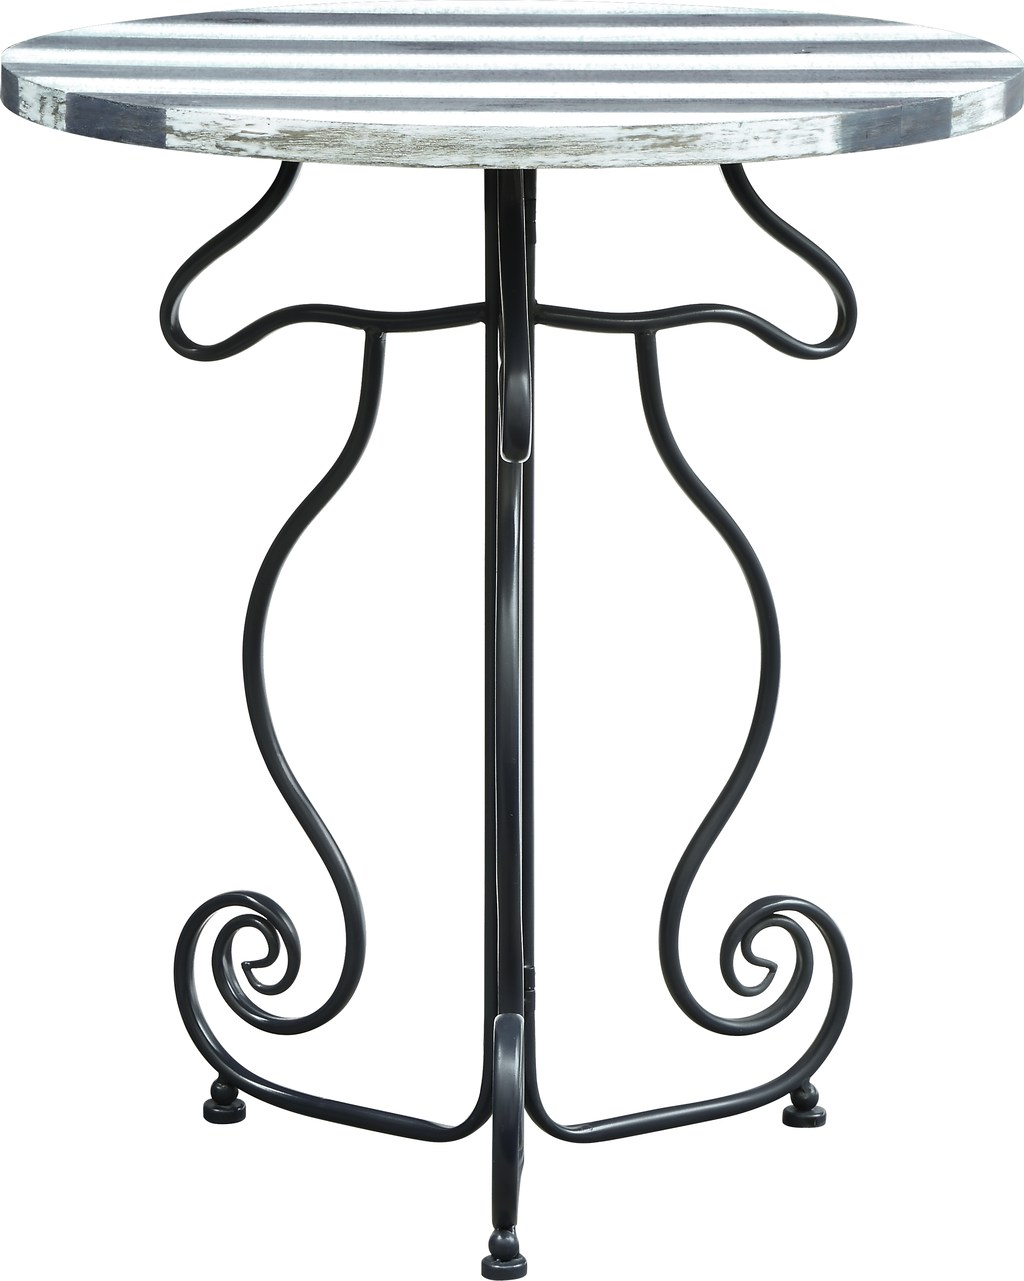 skownan blue accent table tables colors outdoor garden storage chest pier lawn furniture wicker antique bench target coffee and end nautical lamps stackable snack designs diy